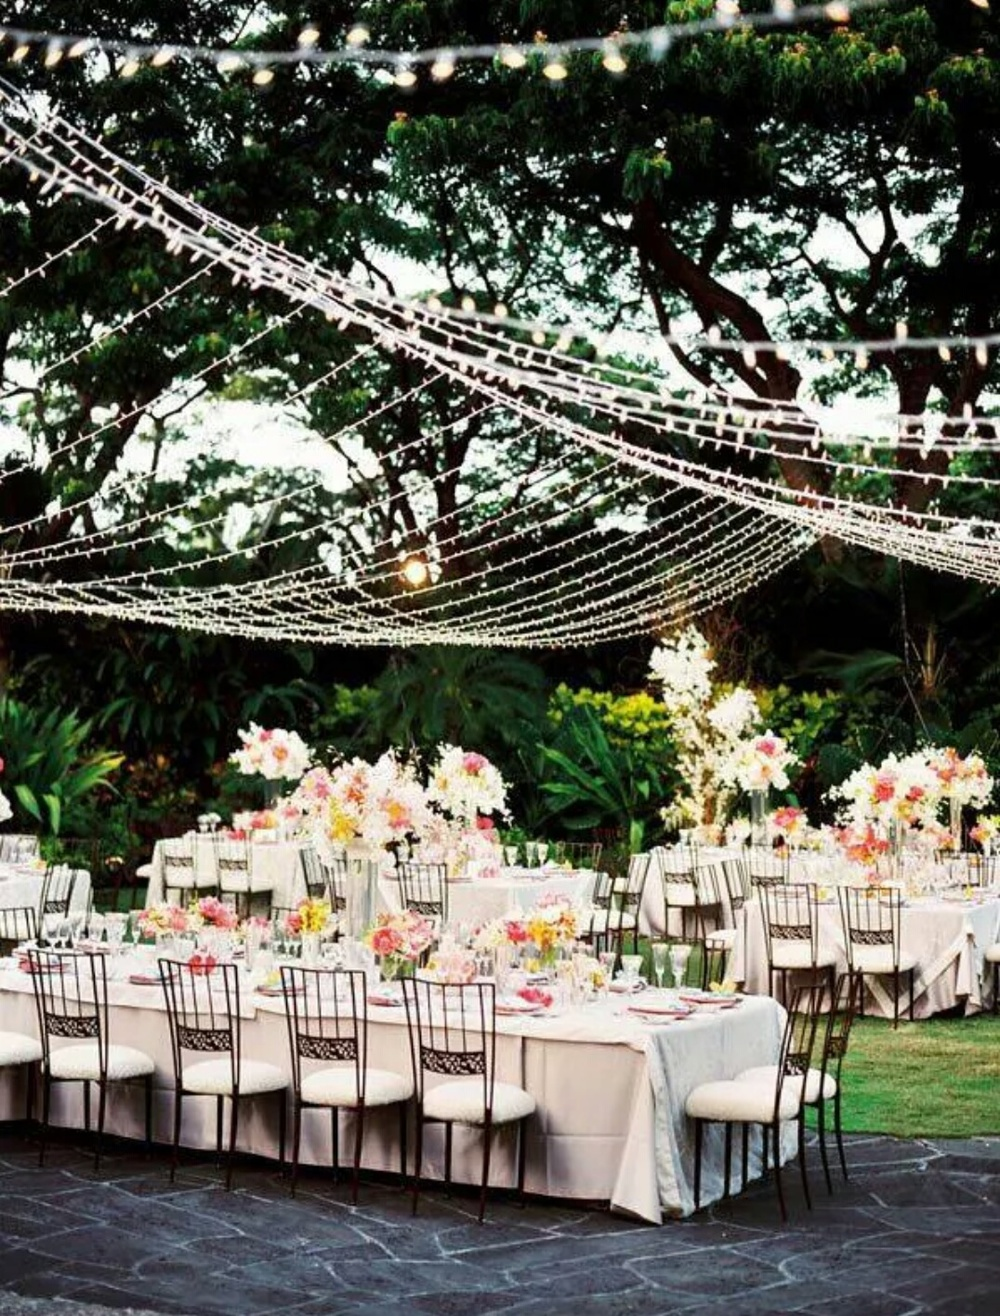 Love the lighting here..would love to have stringing lights for an outdoor reception!